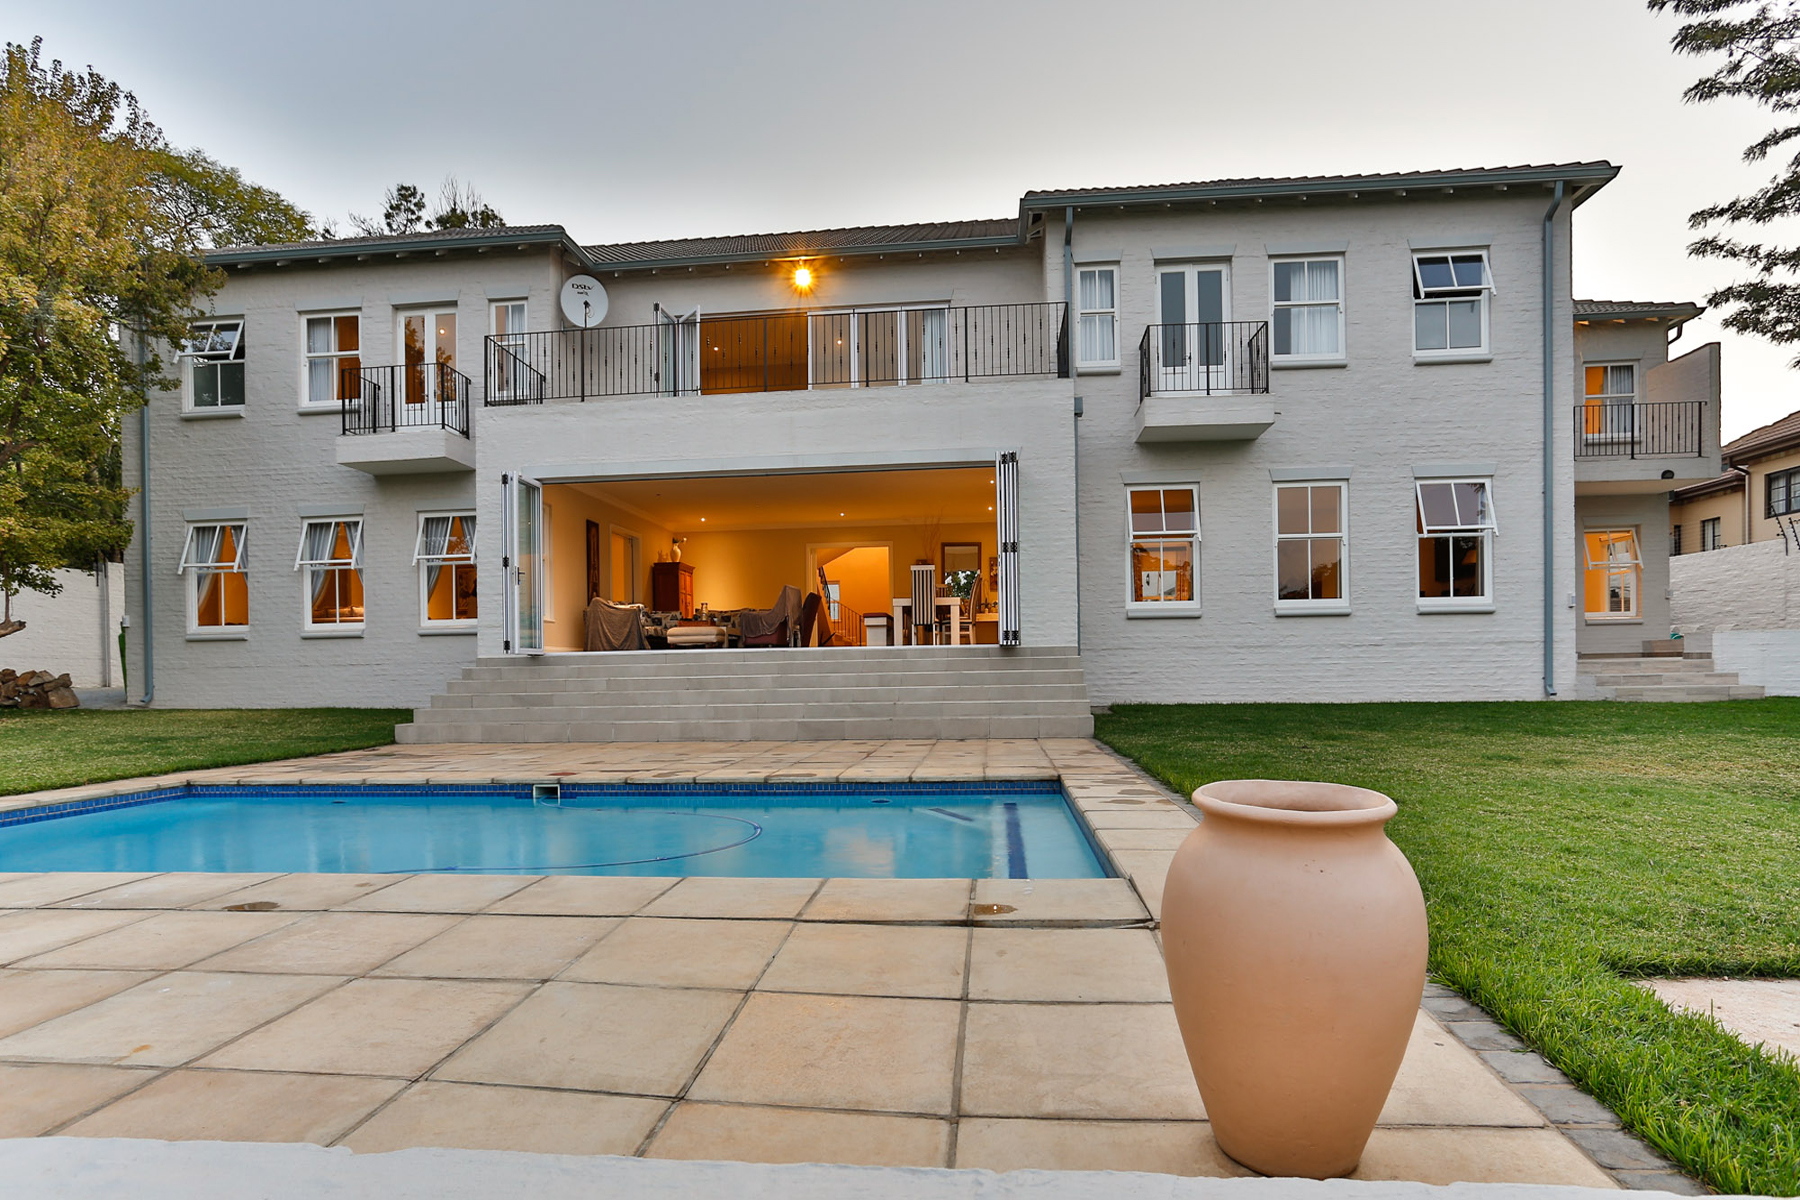 Single Family Home for Sale at Bryanston Johannesburg, Gauteng, South Africa